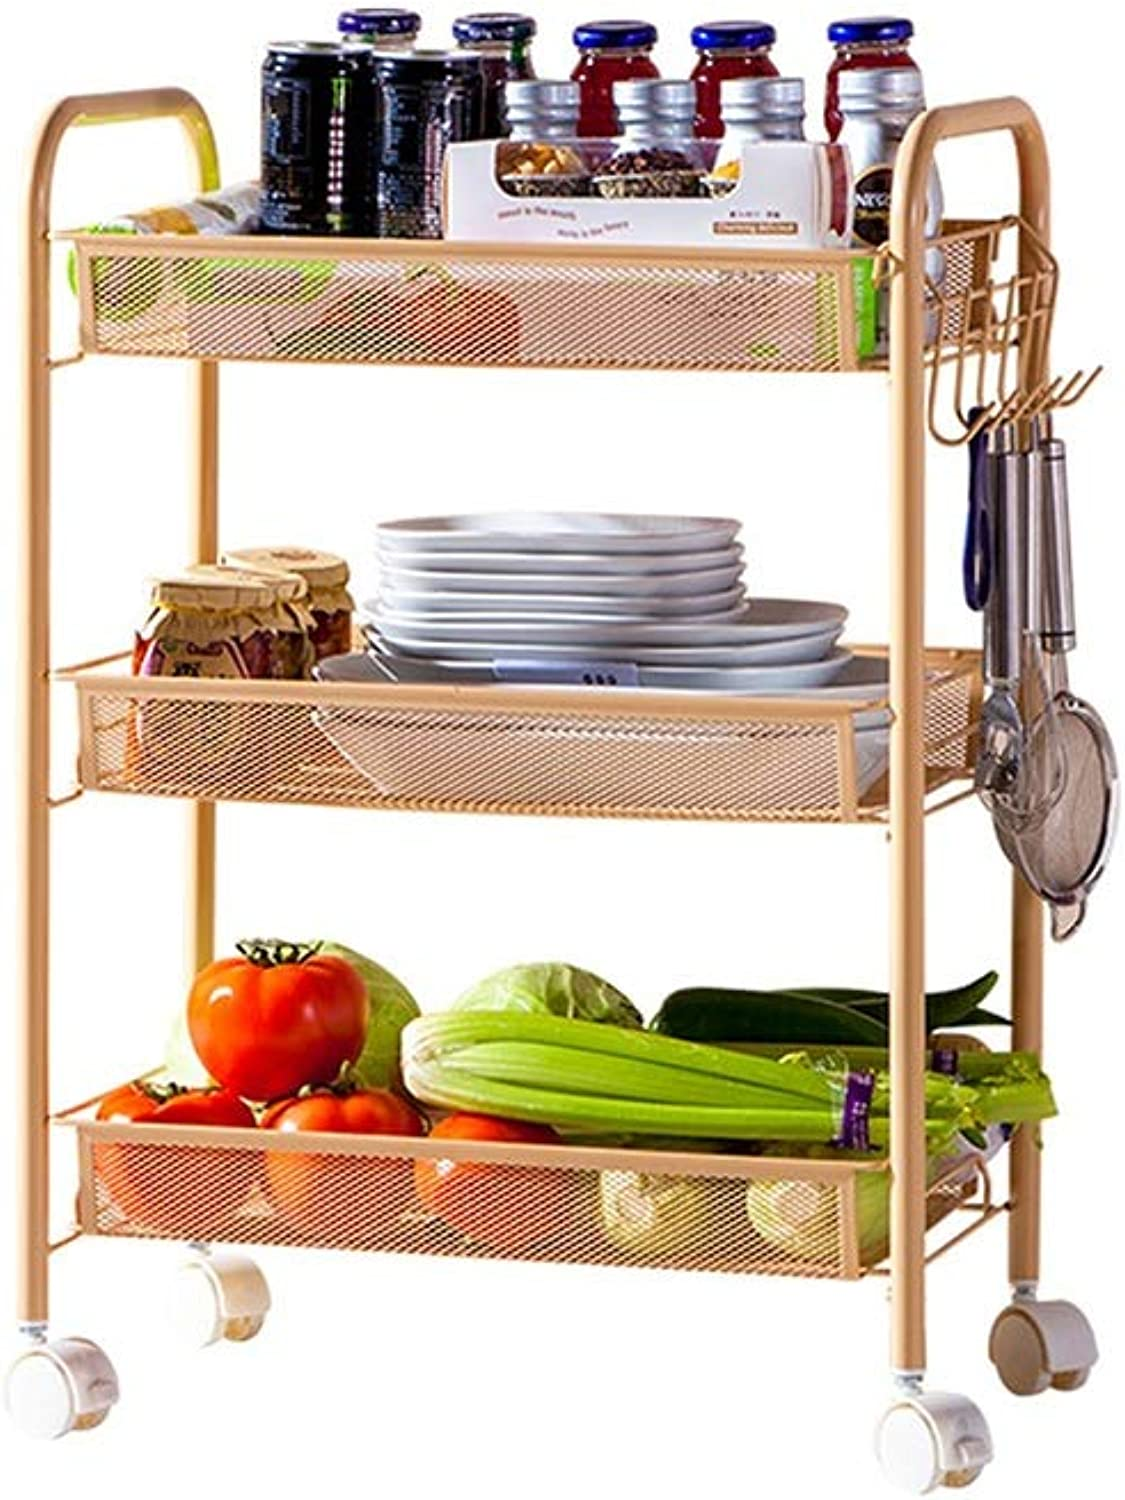 Storage Cart,3 Tier Basket Mesh Rolling Kitchen Trolley, Utility Storage Rack Rolling Cart with 6 Side Hooks, Serving Trolley Mit Locking Wheels for Home Office Kitchen Bathroom HPLL